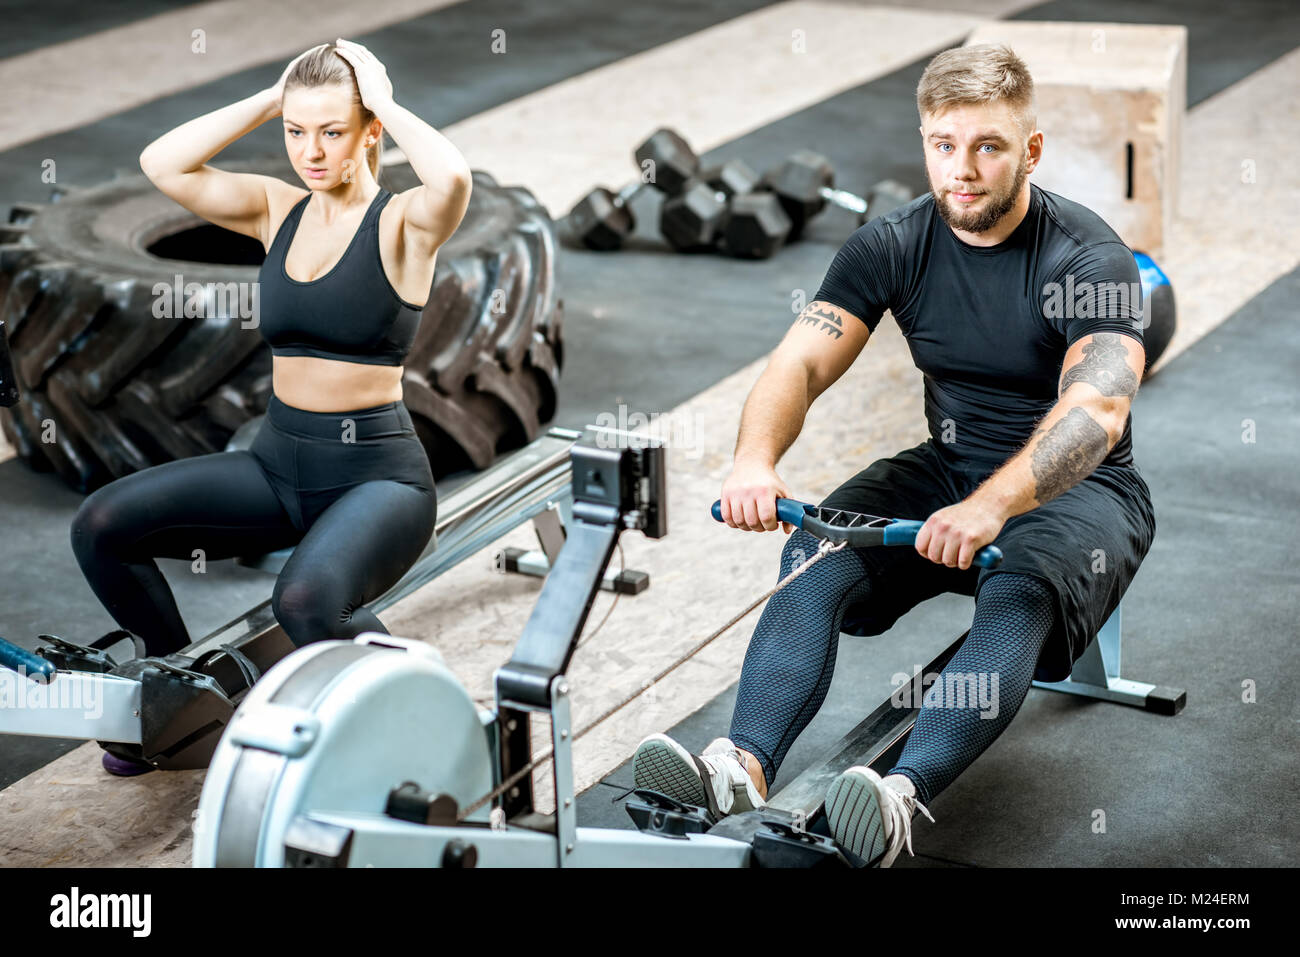 Couple training with exercise machines in the gym - Stock Image